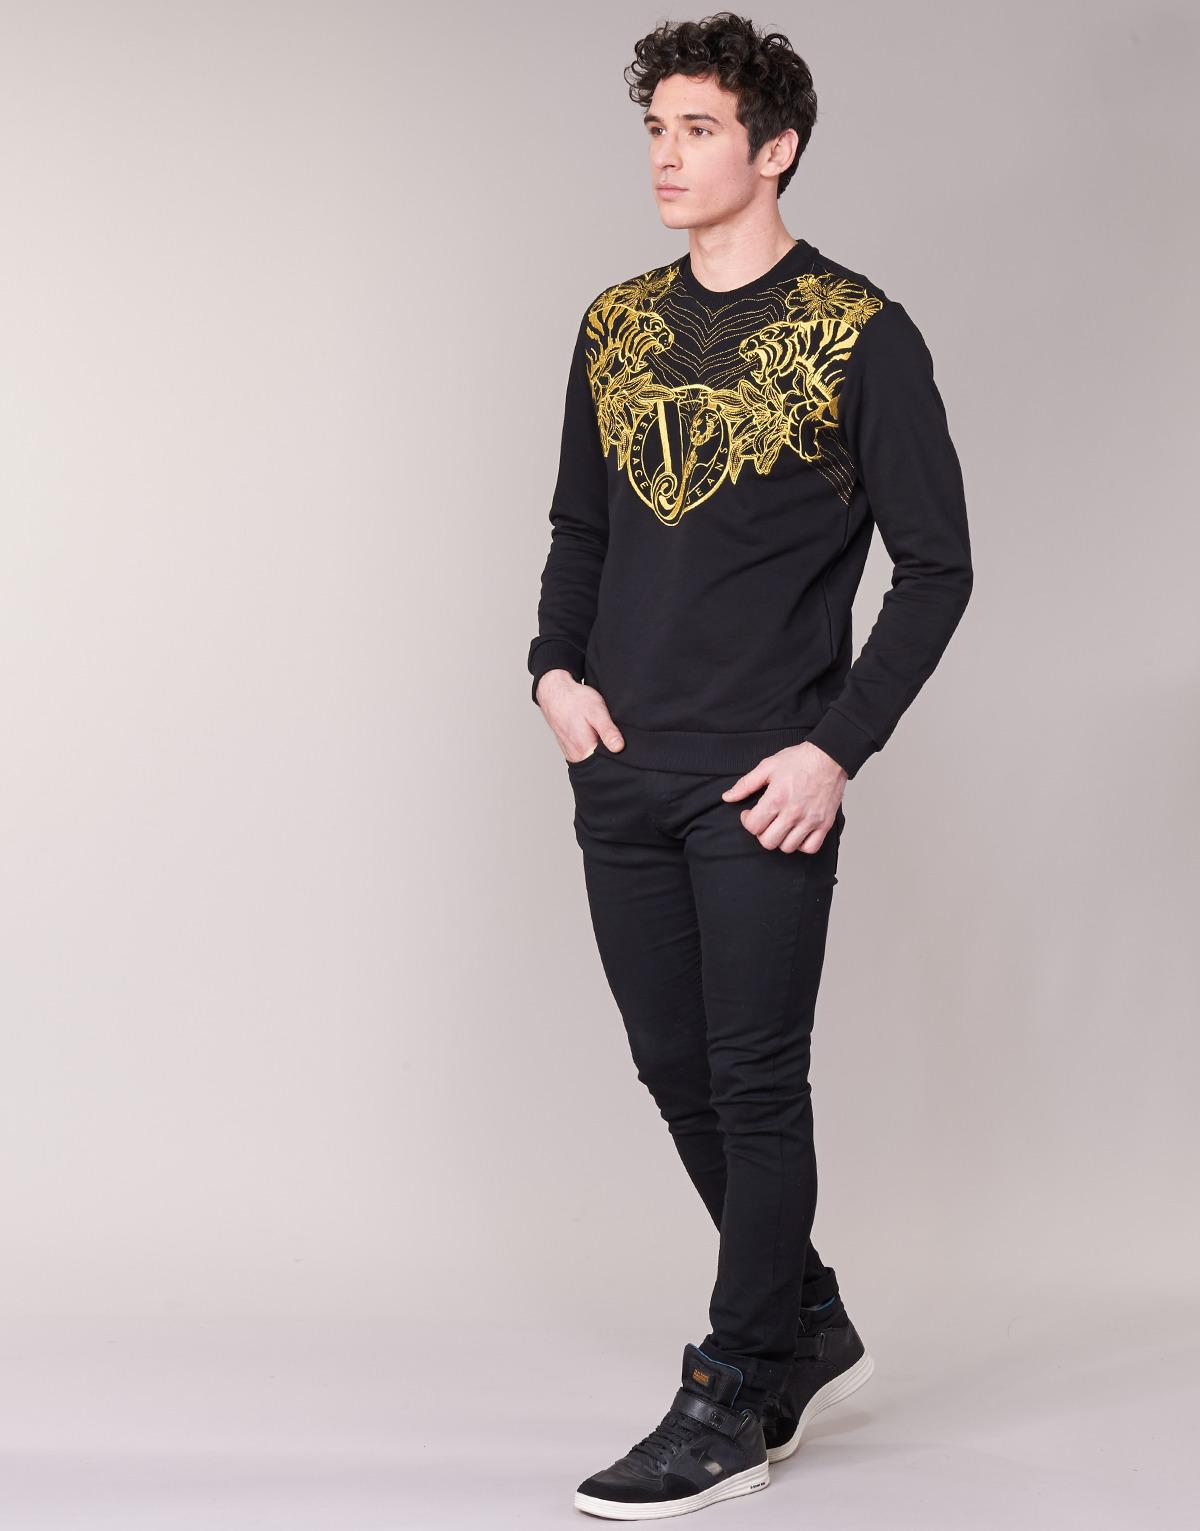 Versace Jeans Couture Cotton B7gpb7f0 Sweatshirt in Black for Men